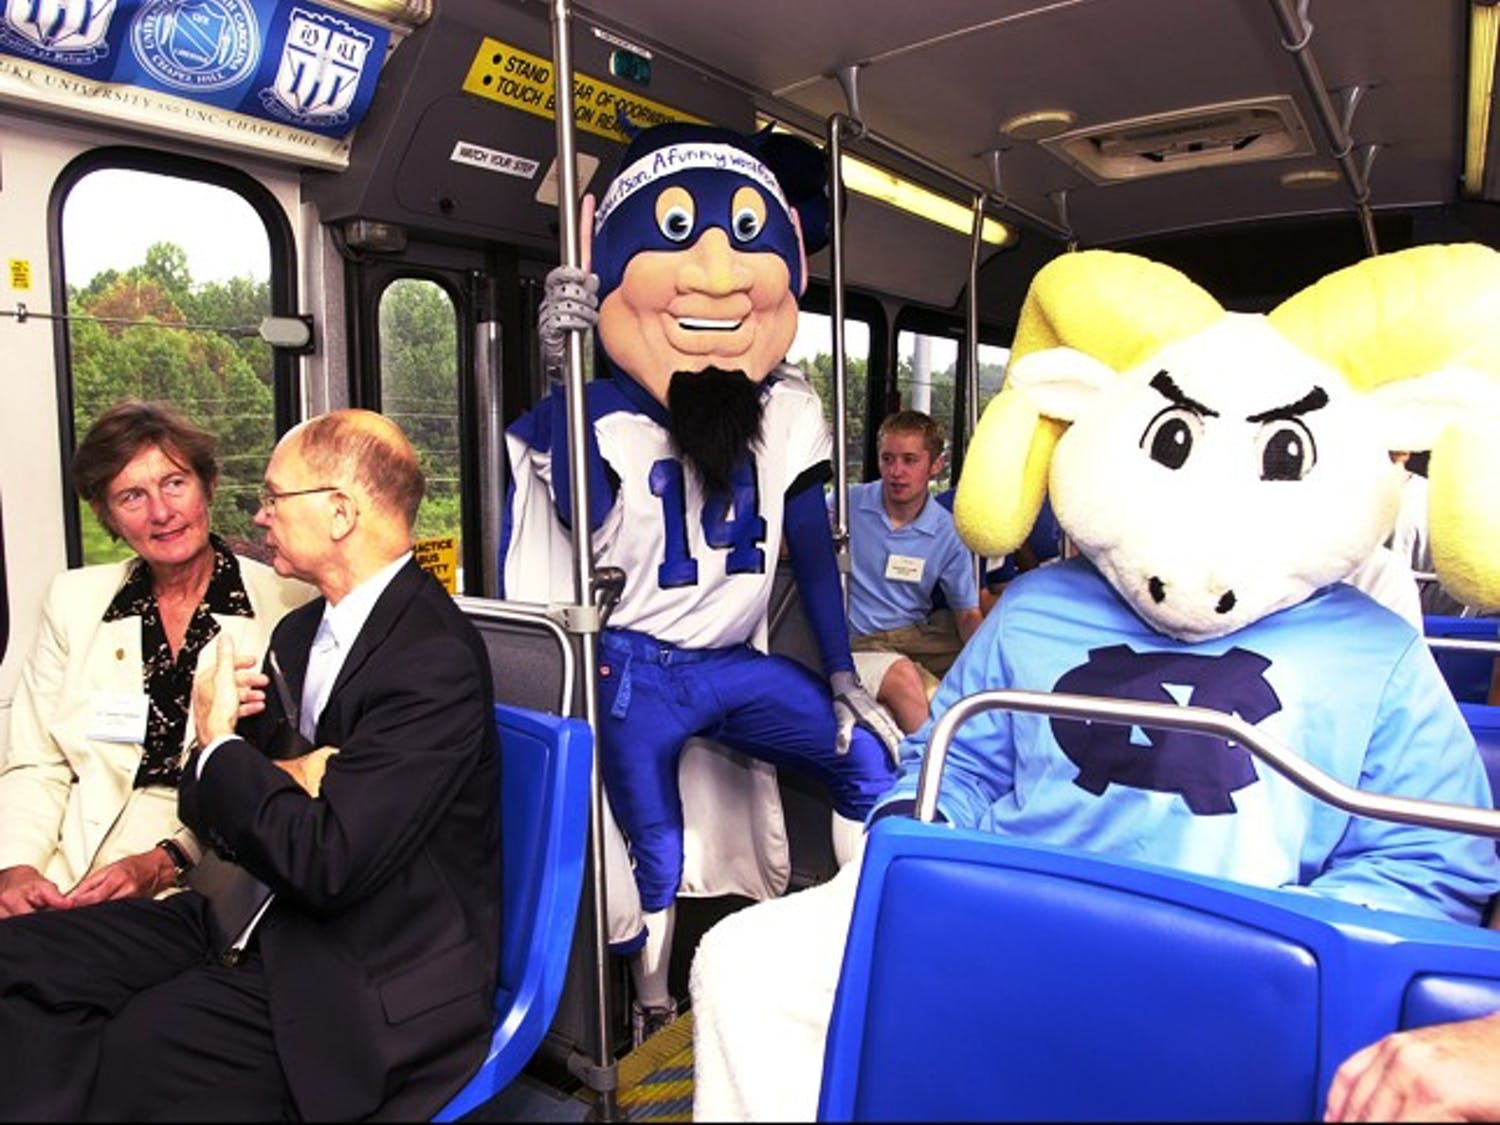 Former UNC Chancellor James Moeser rides with former Duke President Nannerl Keohane on the Robertson Bus on its inaugural trip in 2001.  Courtesy of UNC News Services/Dan Sears